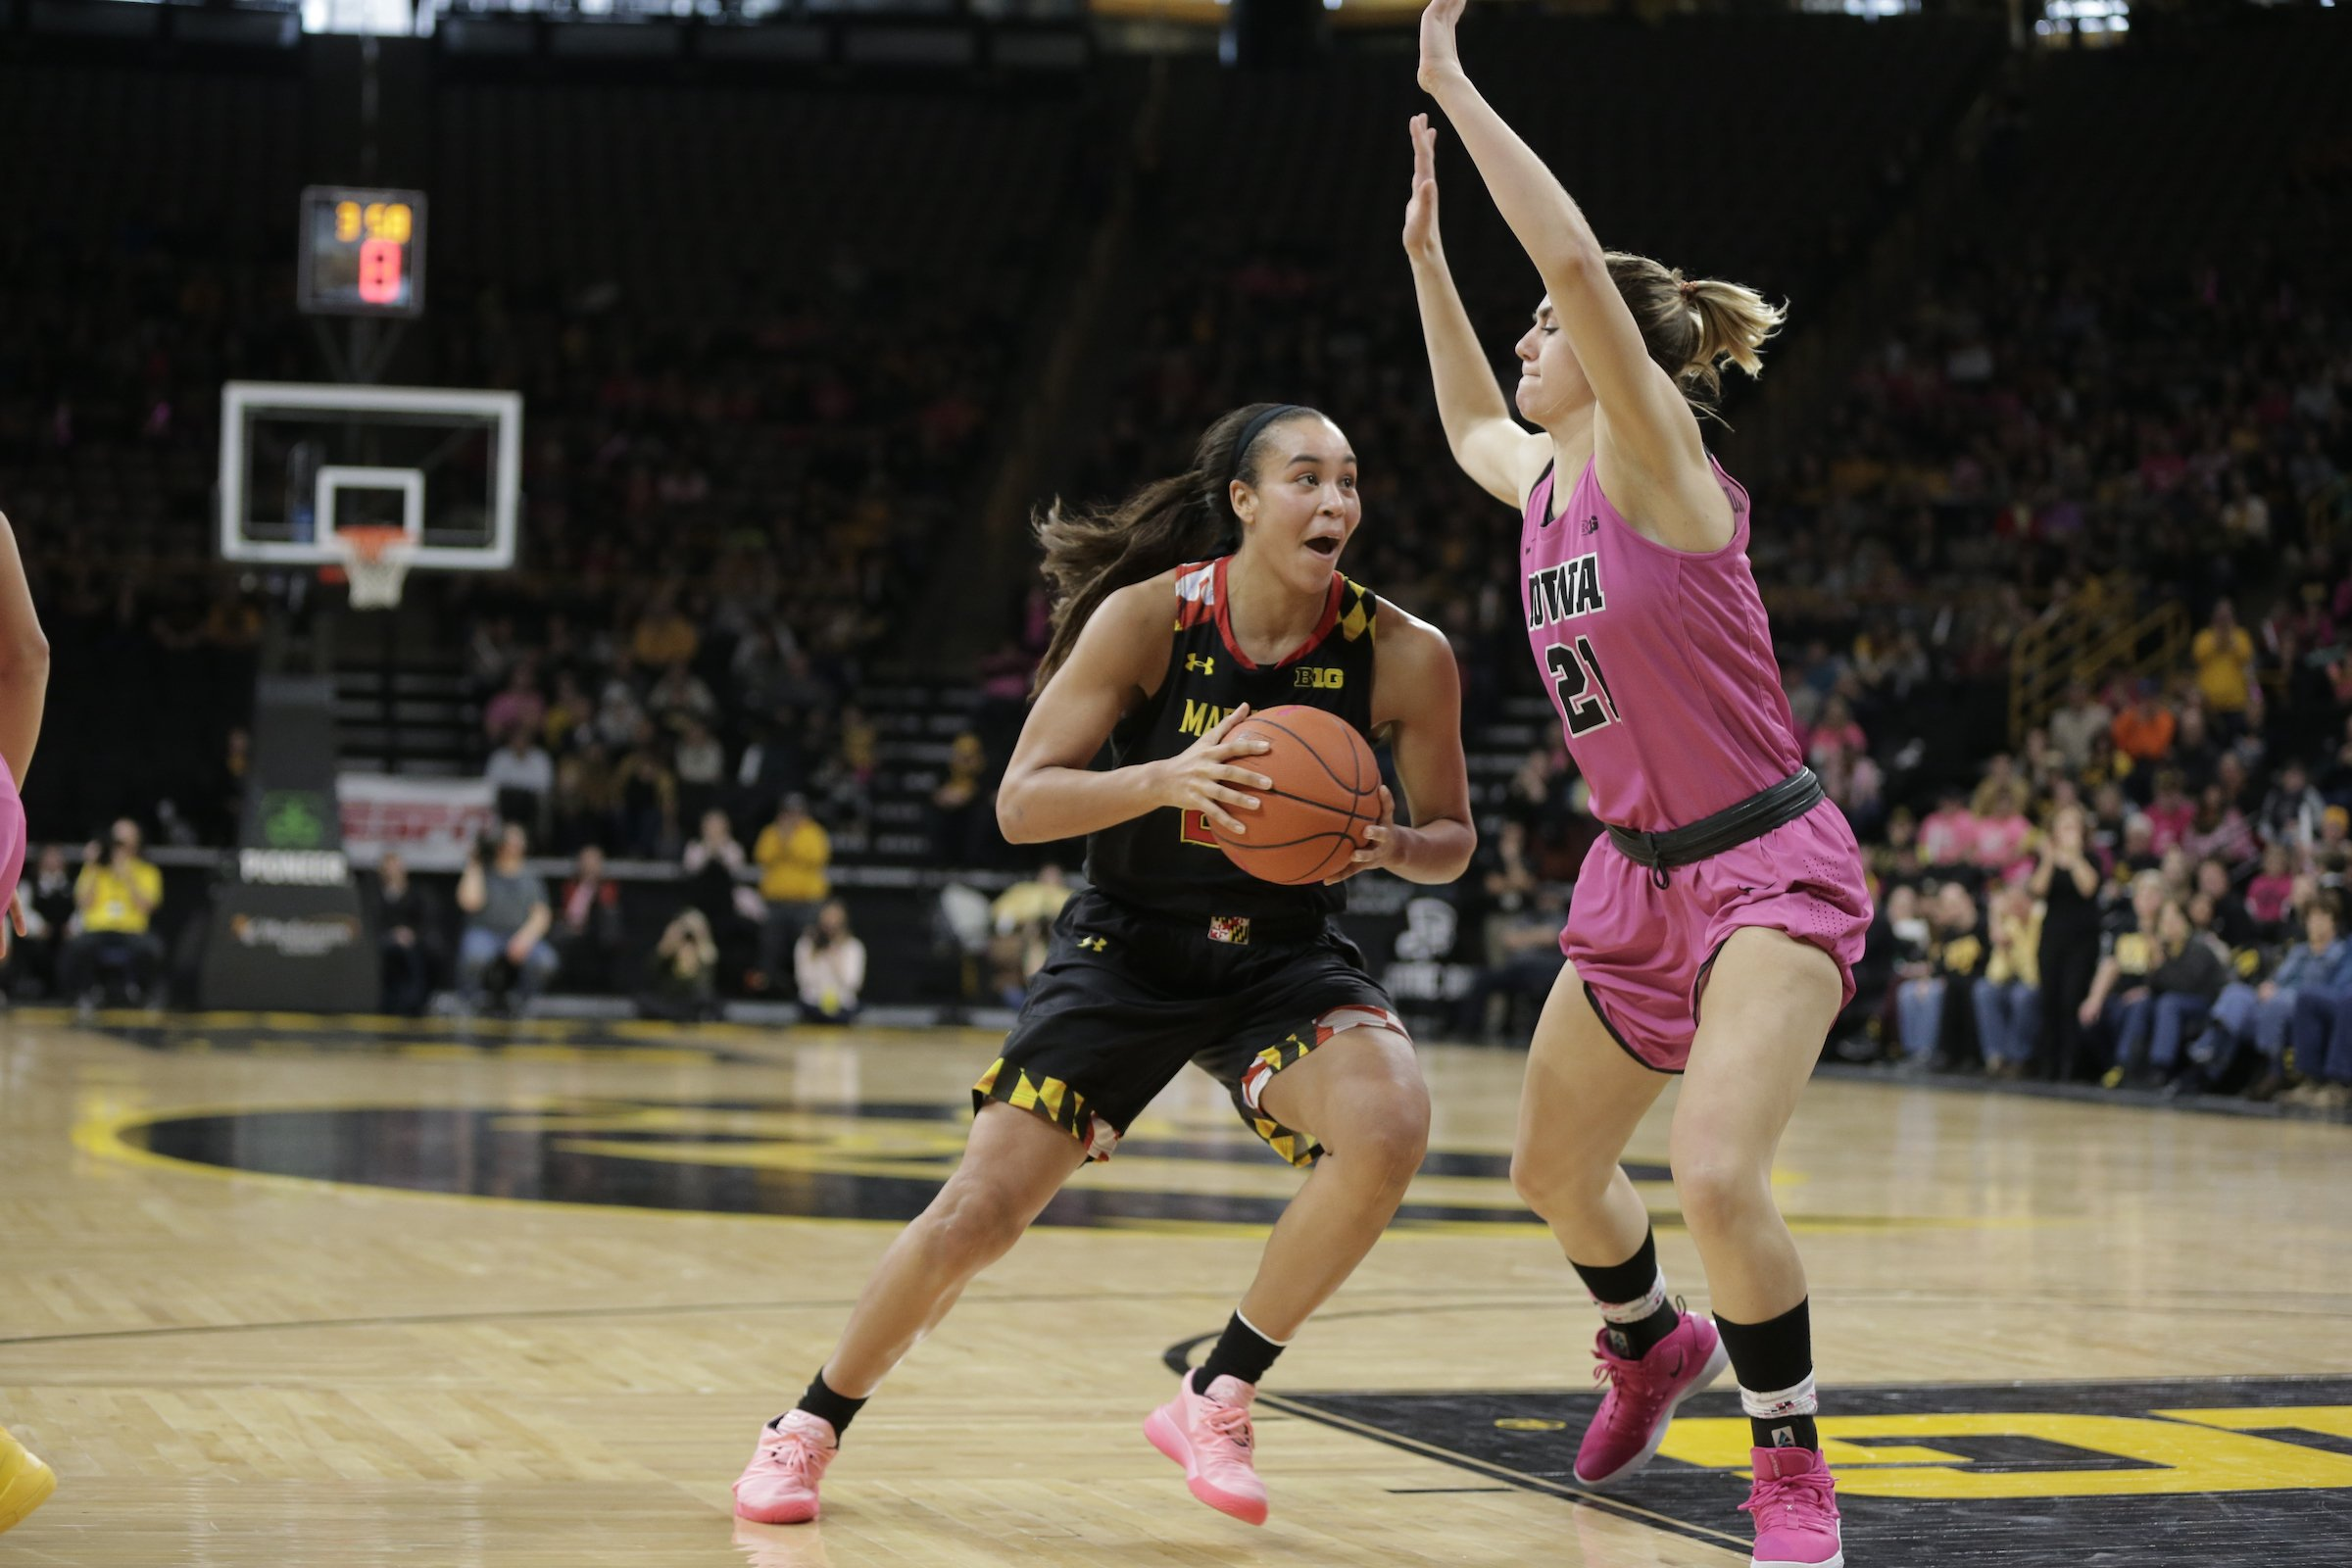 Maryland junior forward Stephanie Jones recorded a team-high 21 points in the Terrapins' 86-73 loss to the Iowa Hawkeyes at Carver-Hawkeye Arena on Sunday, February 17, 2019. (Photo courtesy of Maryland Athletics)